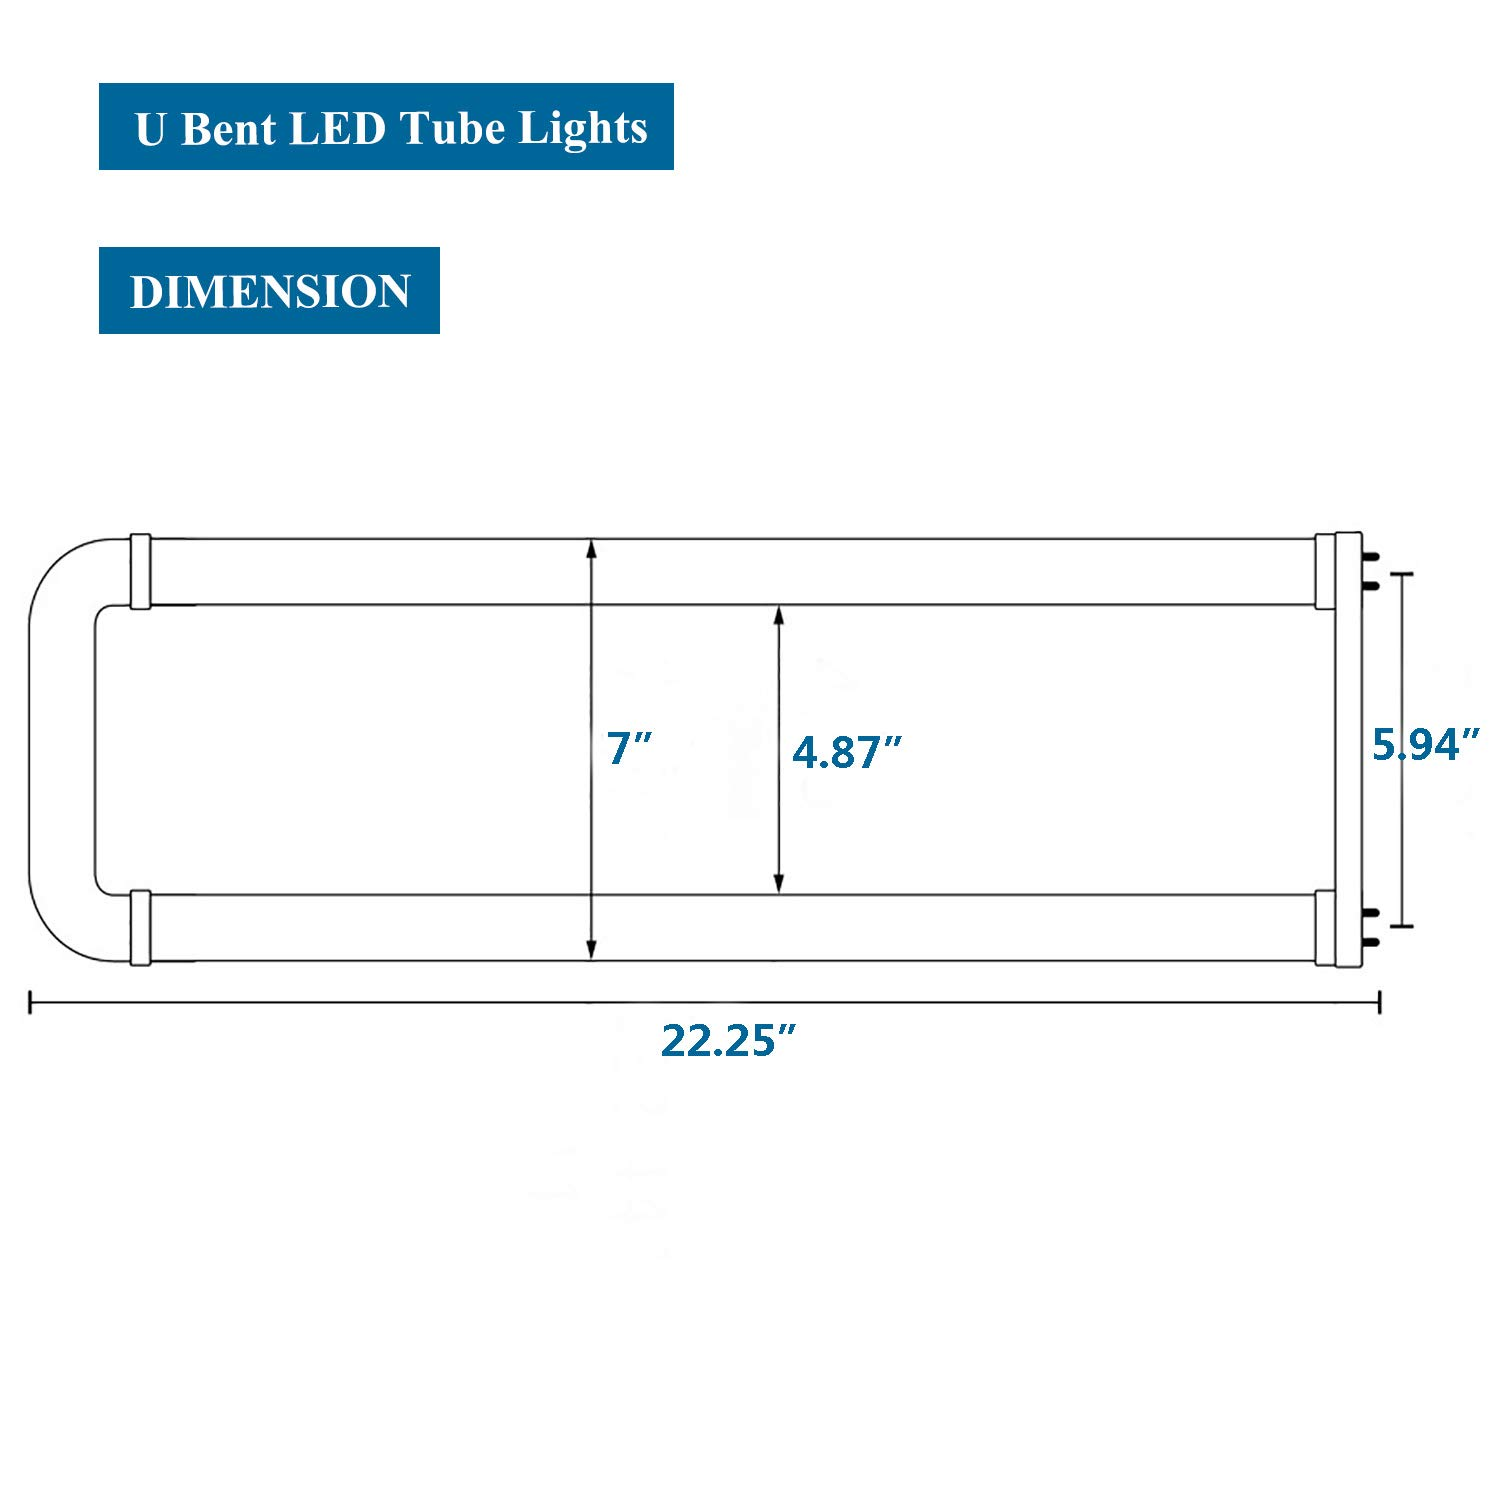 T8 U Bent LED Tube Light - Romwish 18W(40W Replacement) 2x2FT U Bend U Bend Wiring Diagram For Led Bulbs on